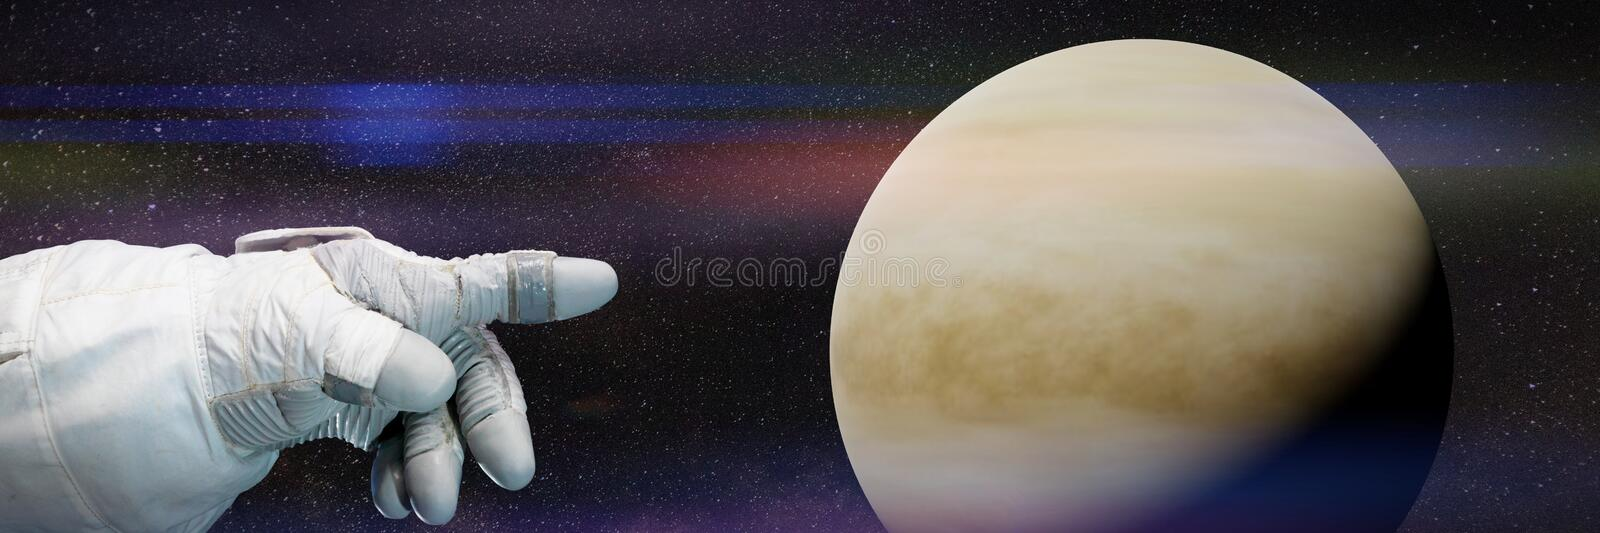 Astronaut pointing to the planet Venus in natural colours 3d illustration, background banner, elements of this image are furnishe. Astronautic background banner vector illustration